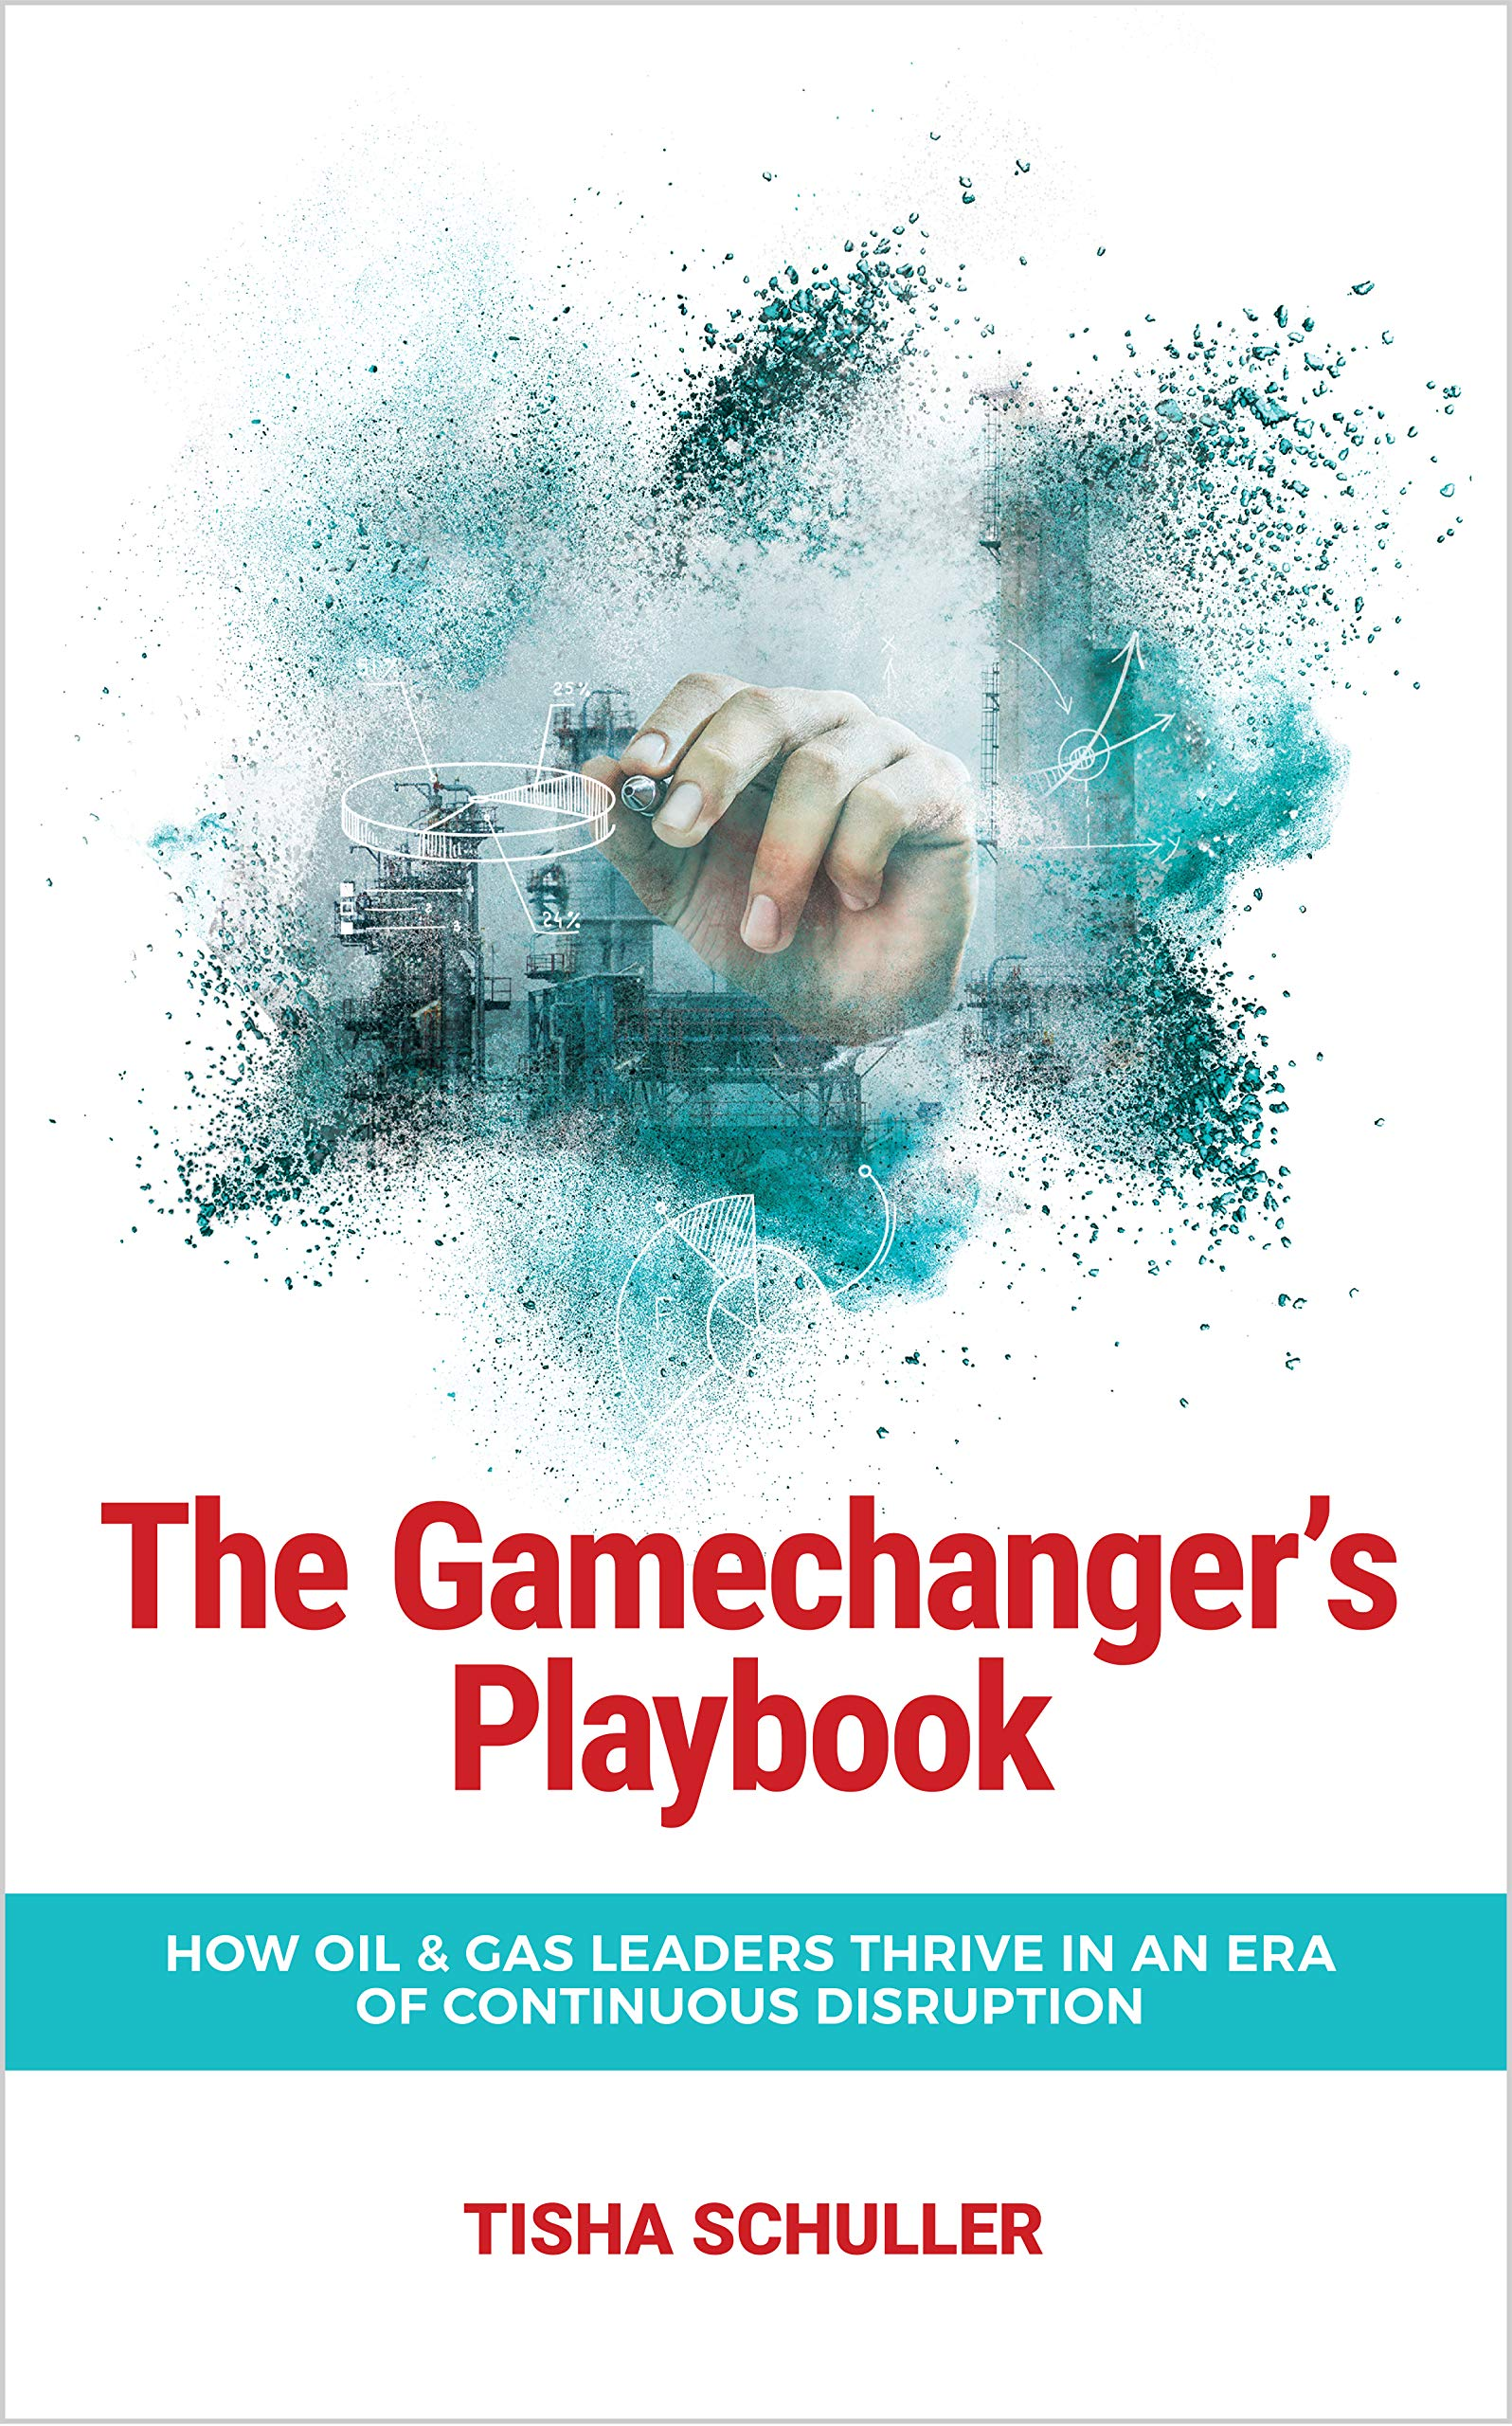 The Gamechanger's Playbook: How Oil & Gas Leaders Thrive in an Era of Continuous Disruption